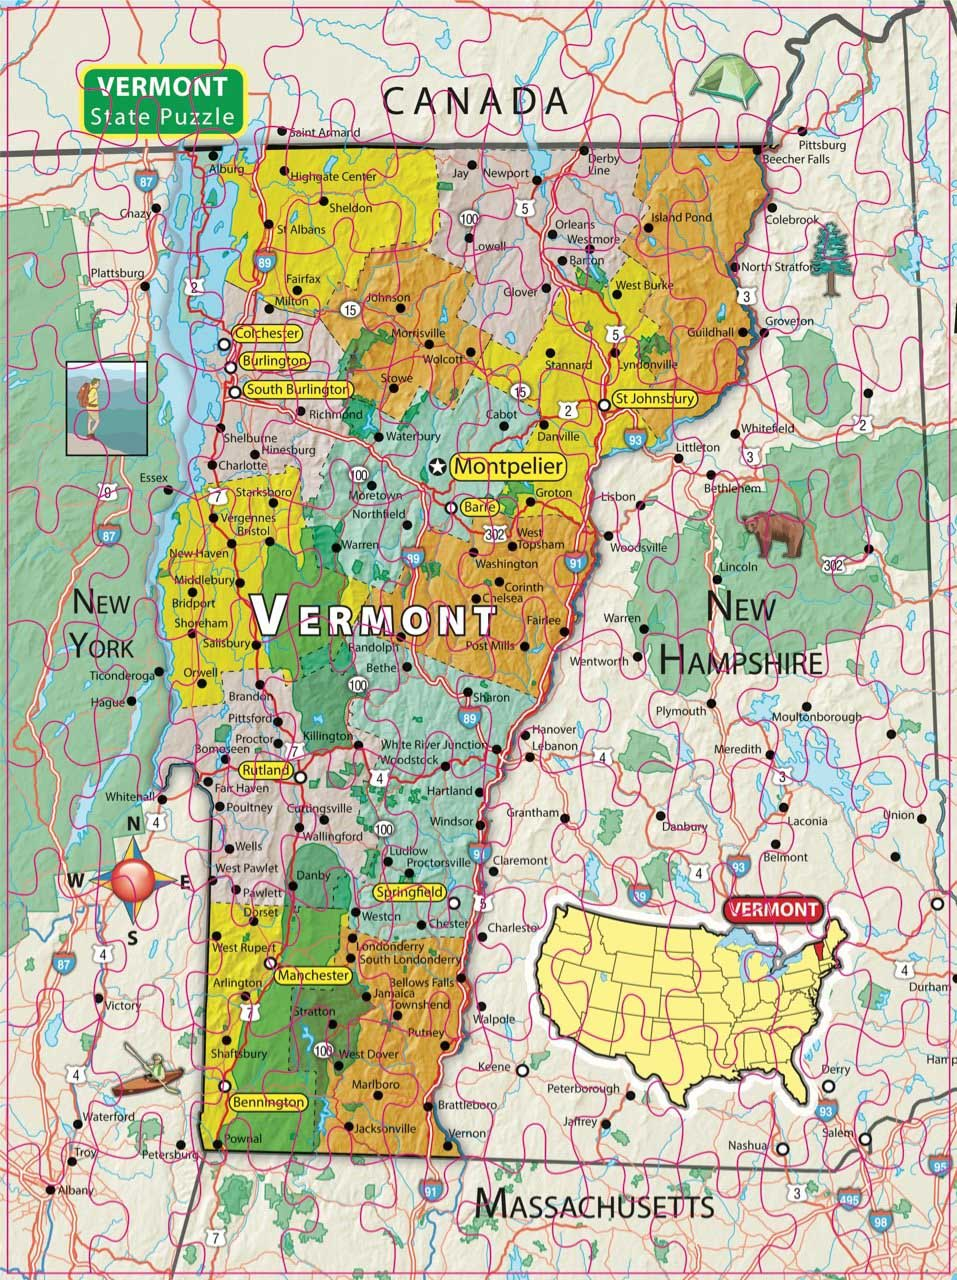 City Magnetic Puzzle Vermont Cities Jigsaw Puzzle